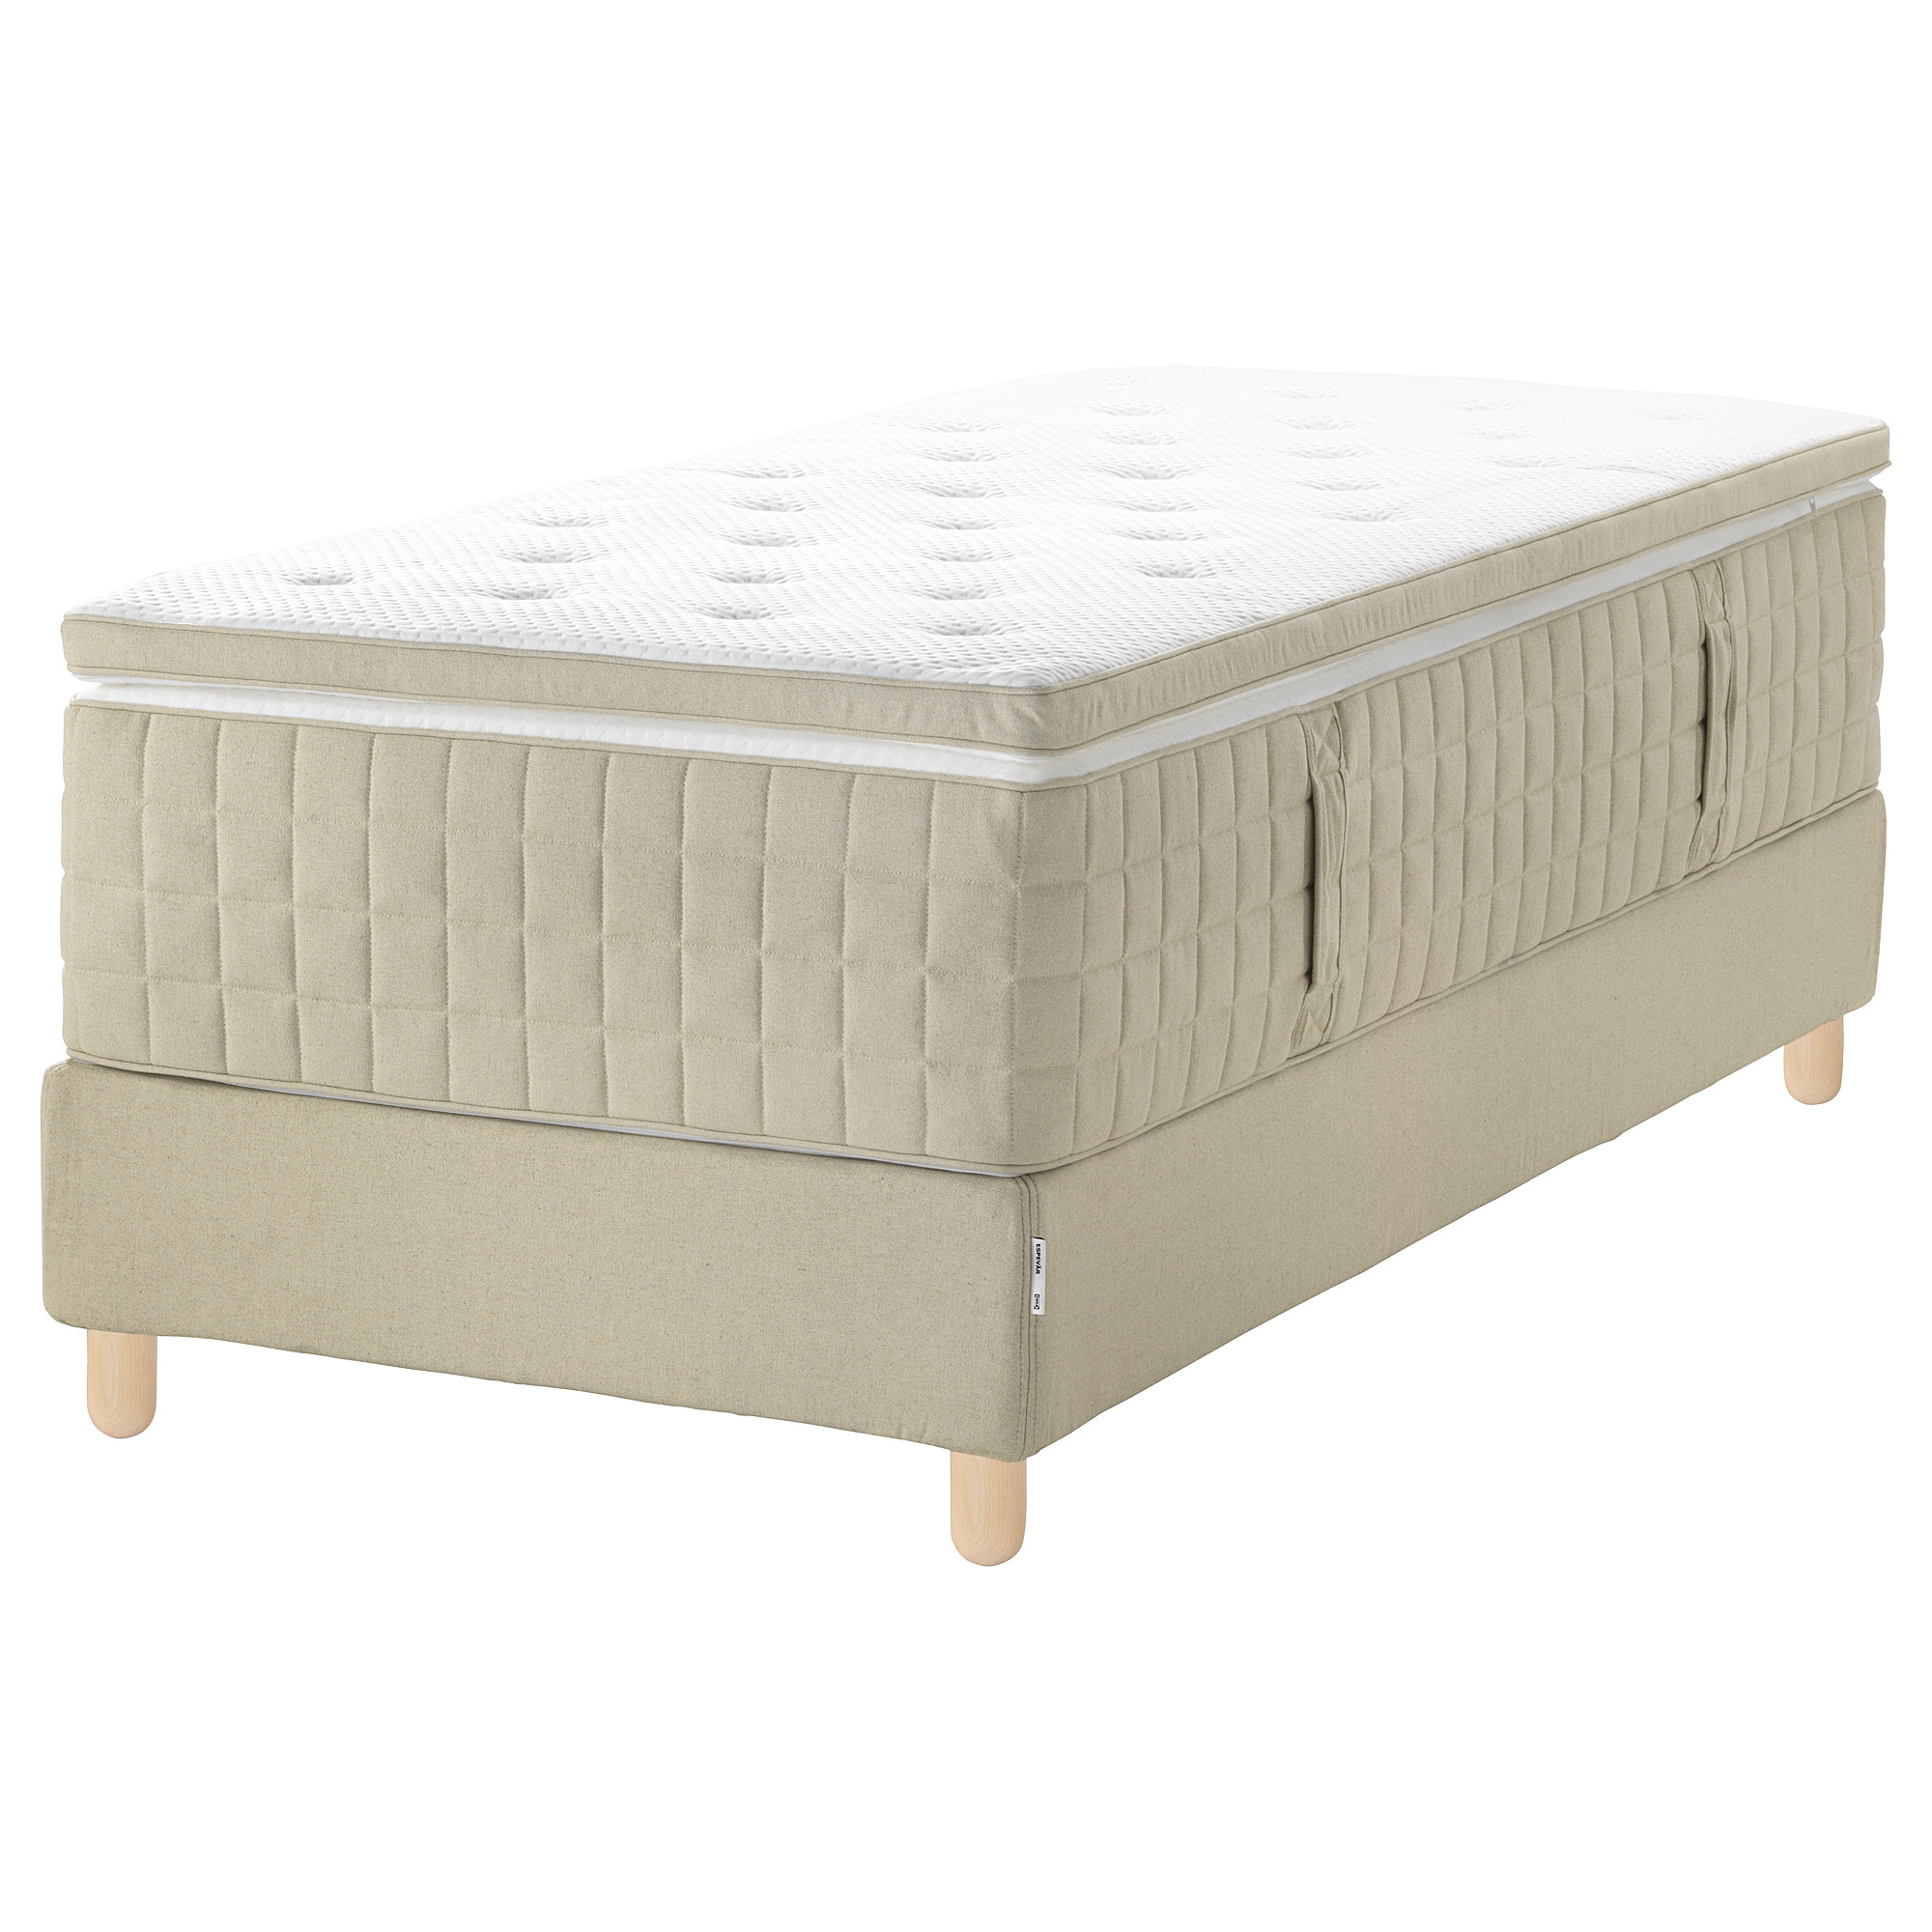 ikea espeva r divan bed easy to get in and out of bed because the mattress base